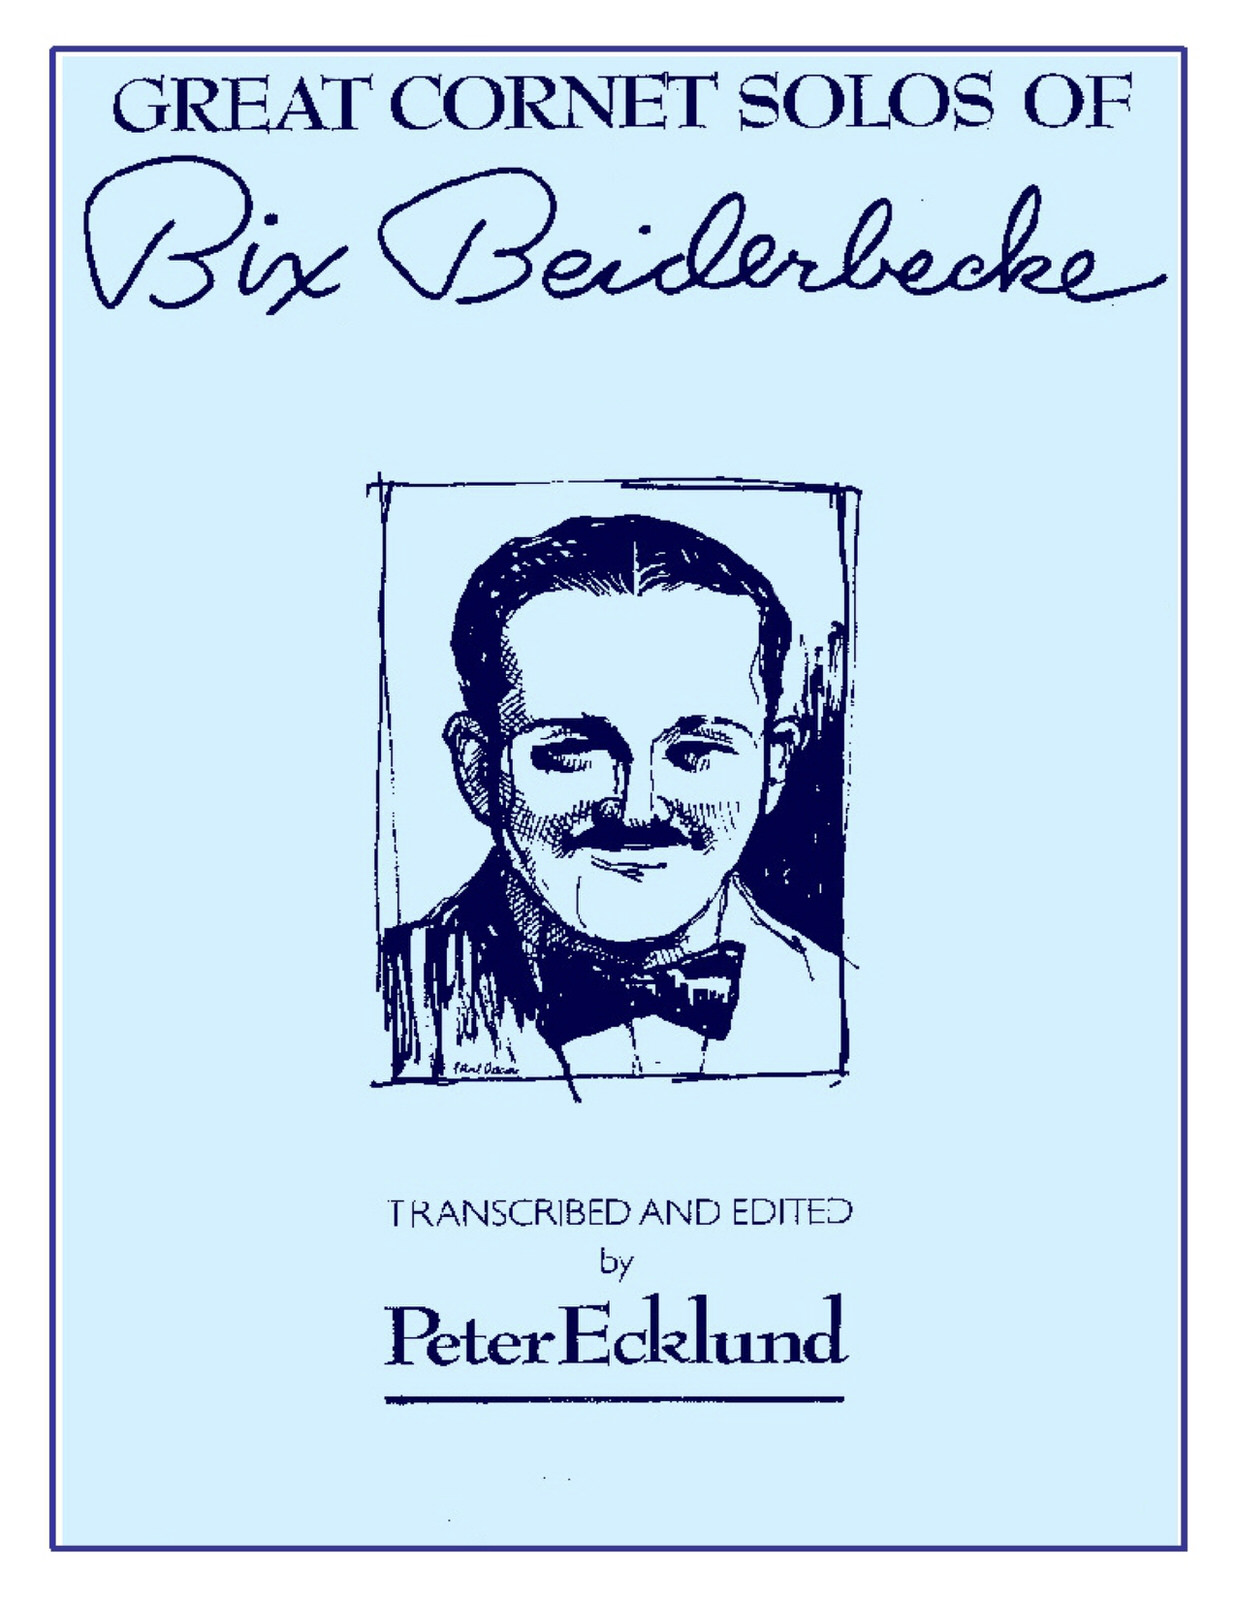 The Great Cornet Solos of Bix Beiderbecke